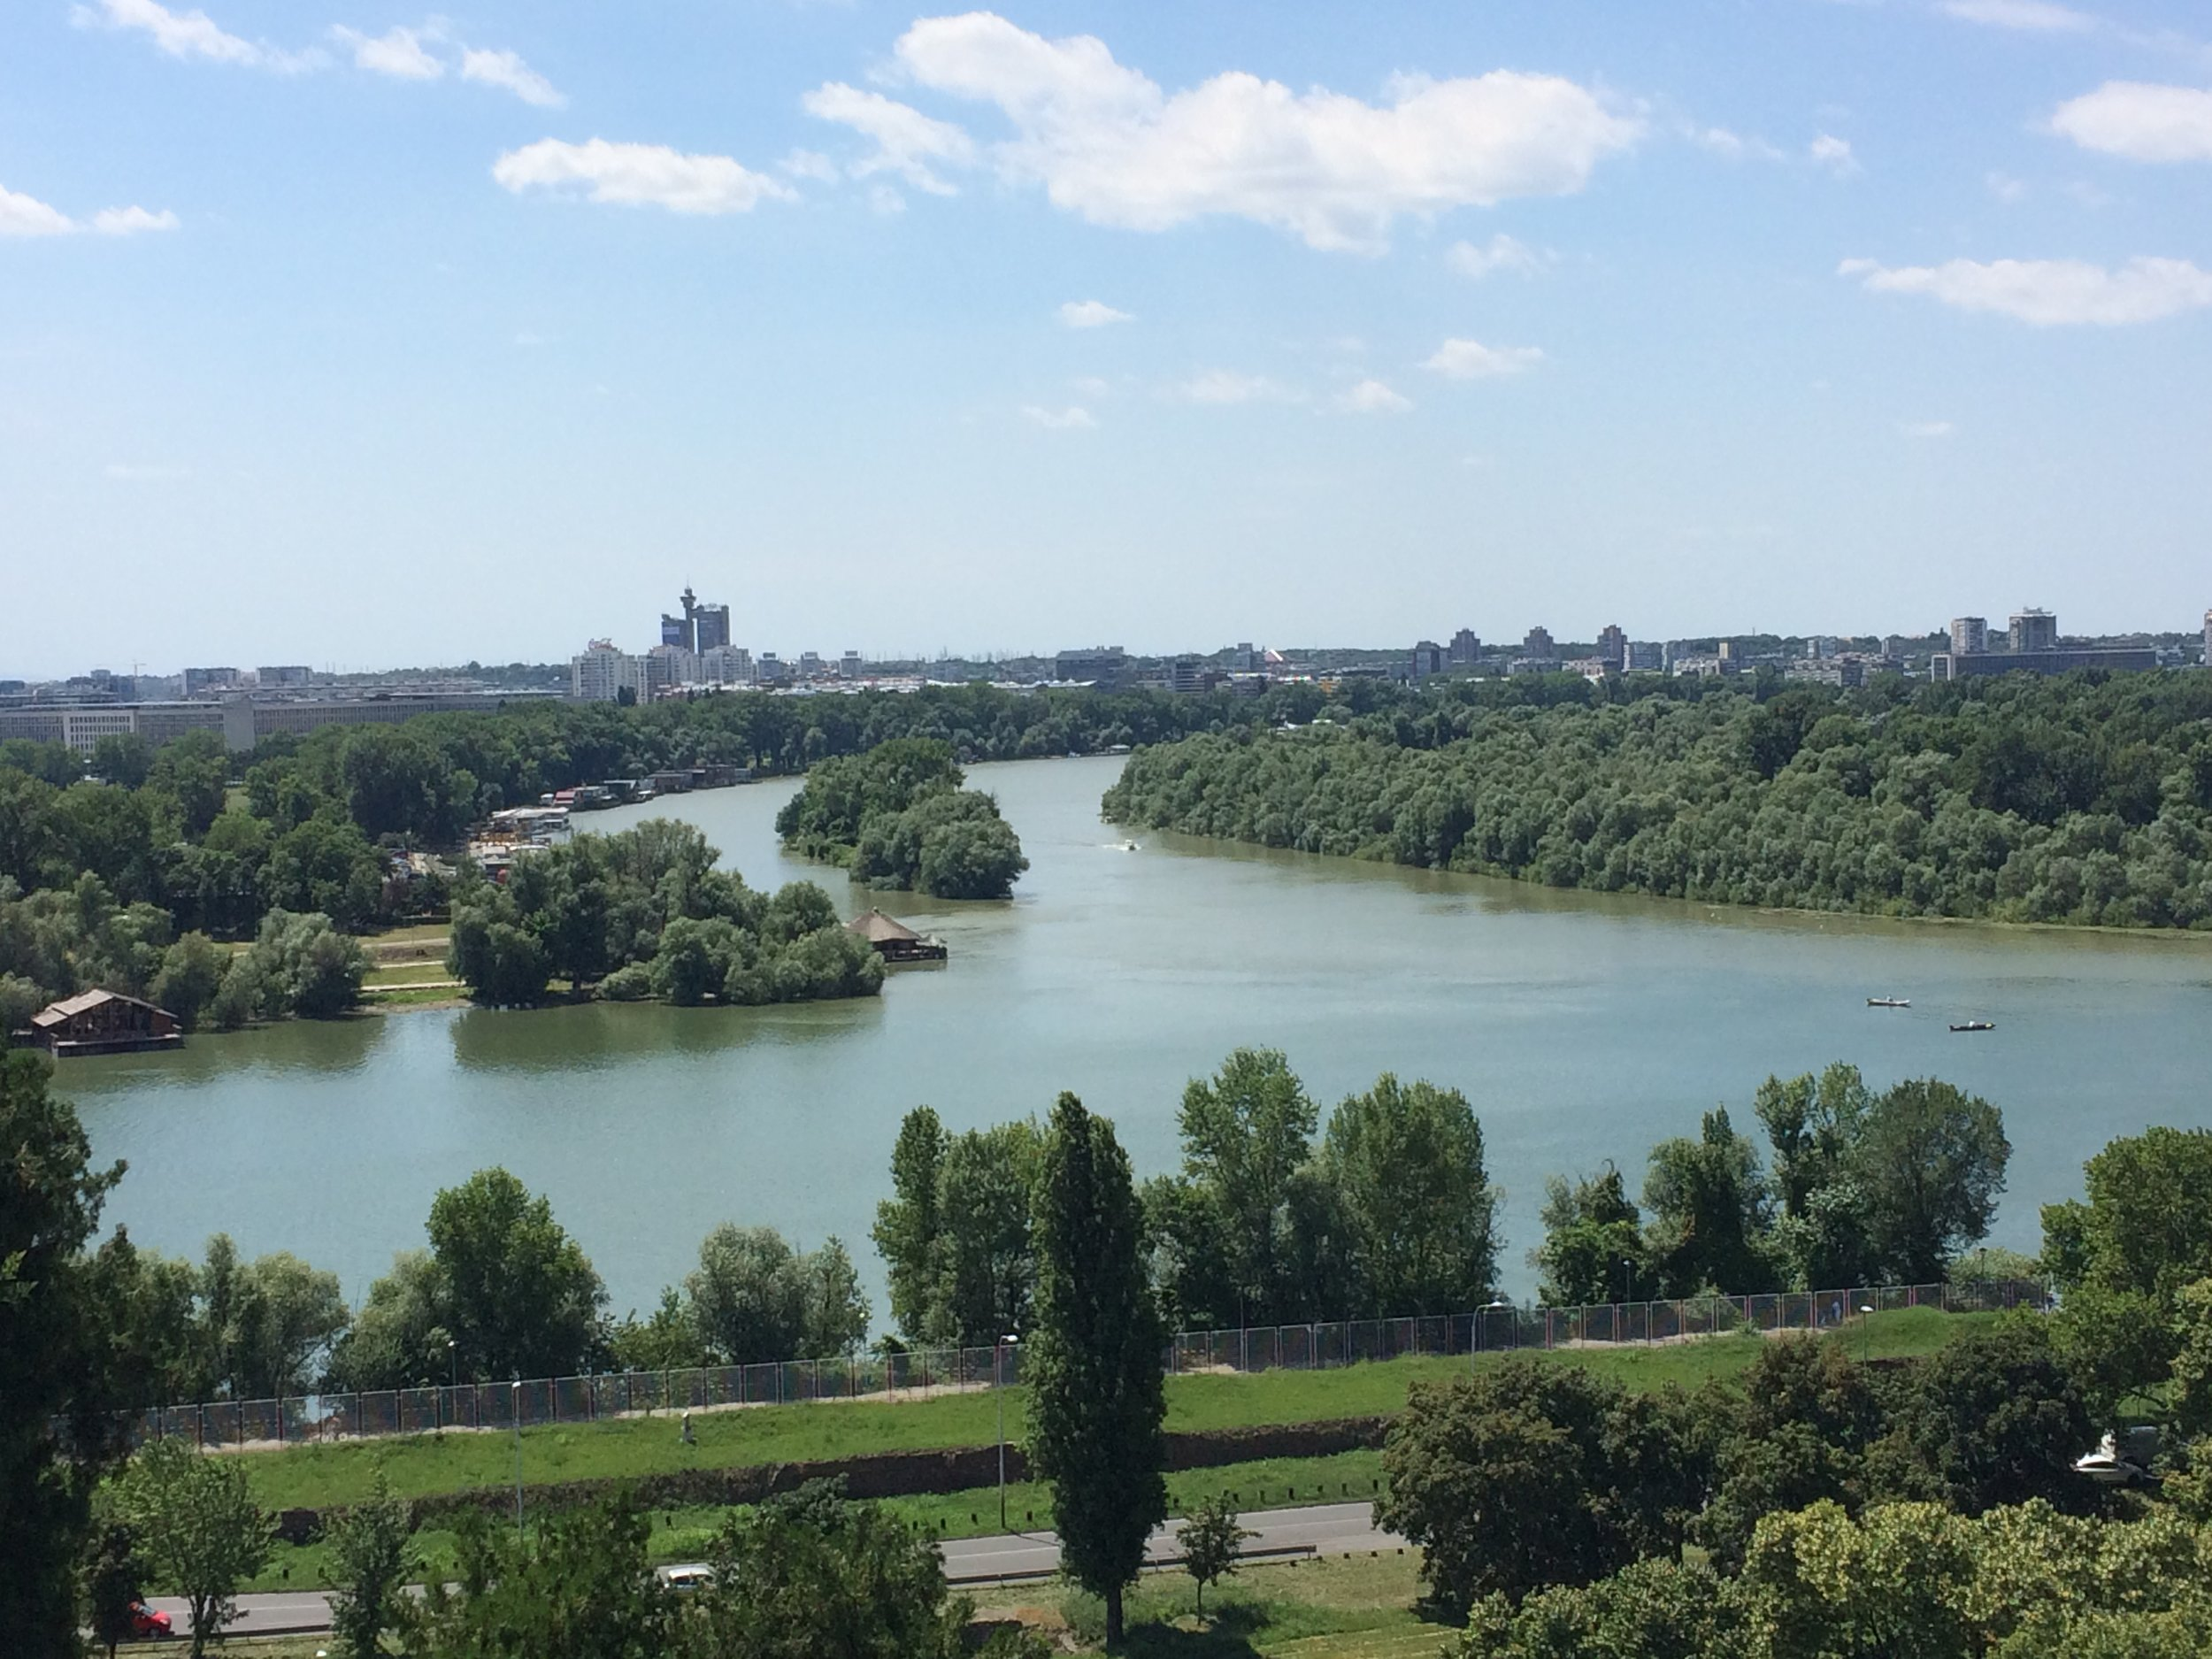 The confluence of the rivers Sava and Danube